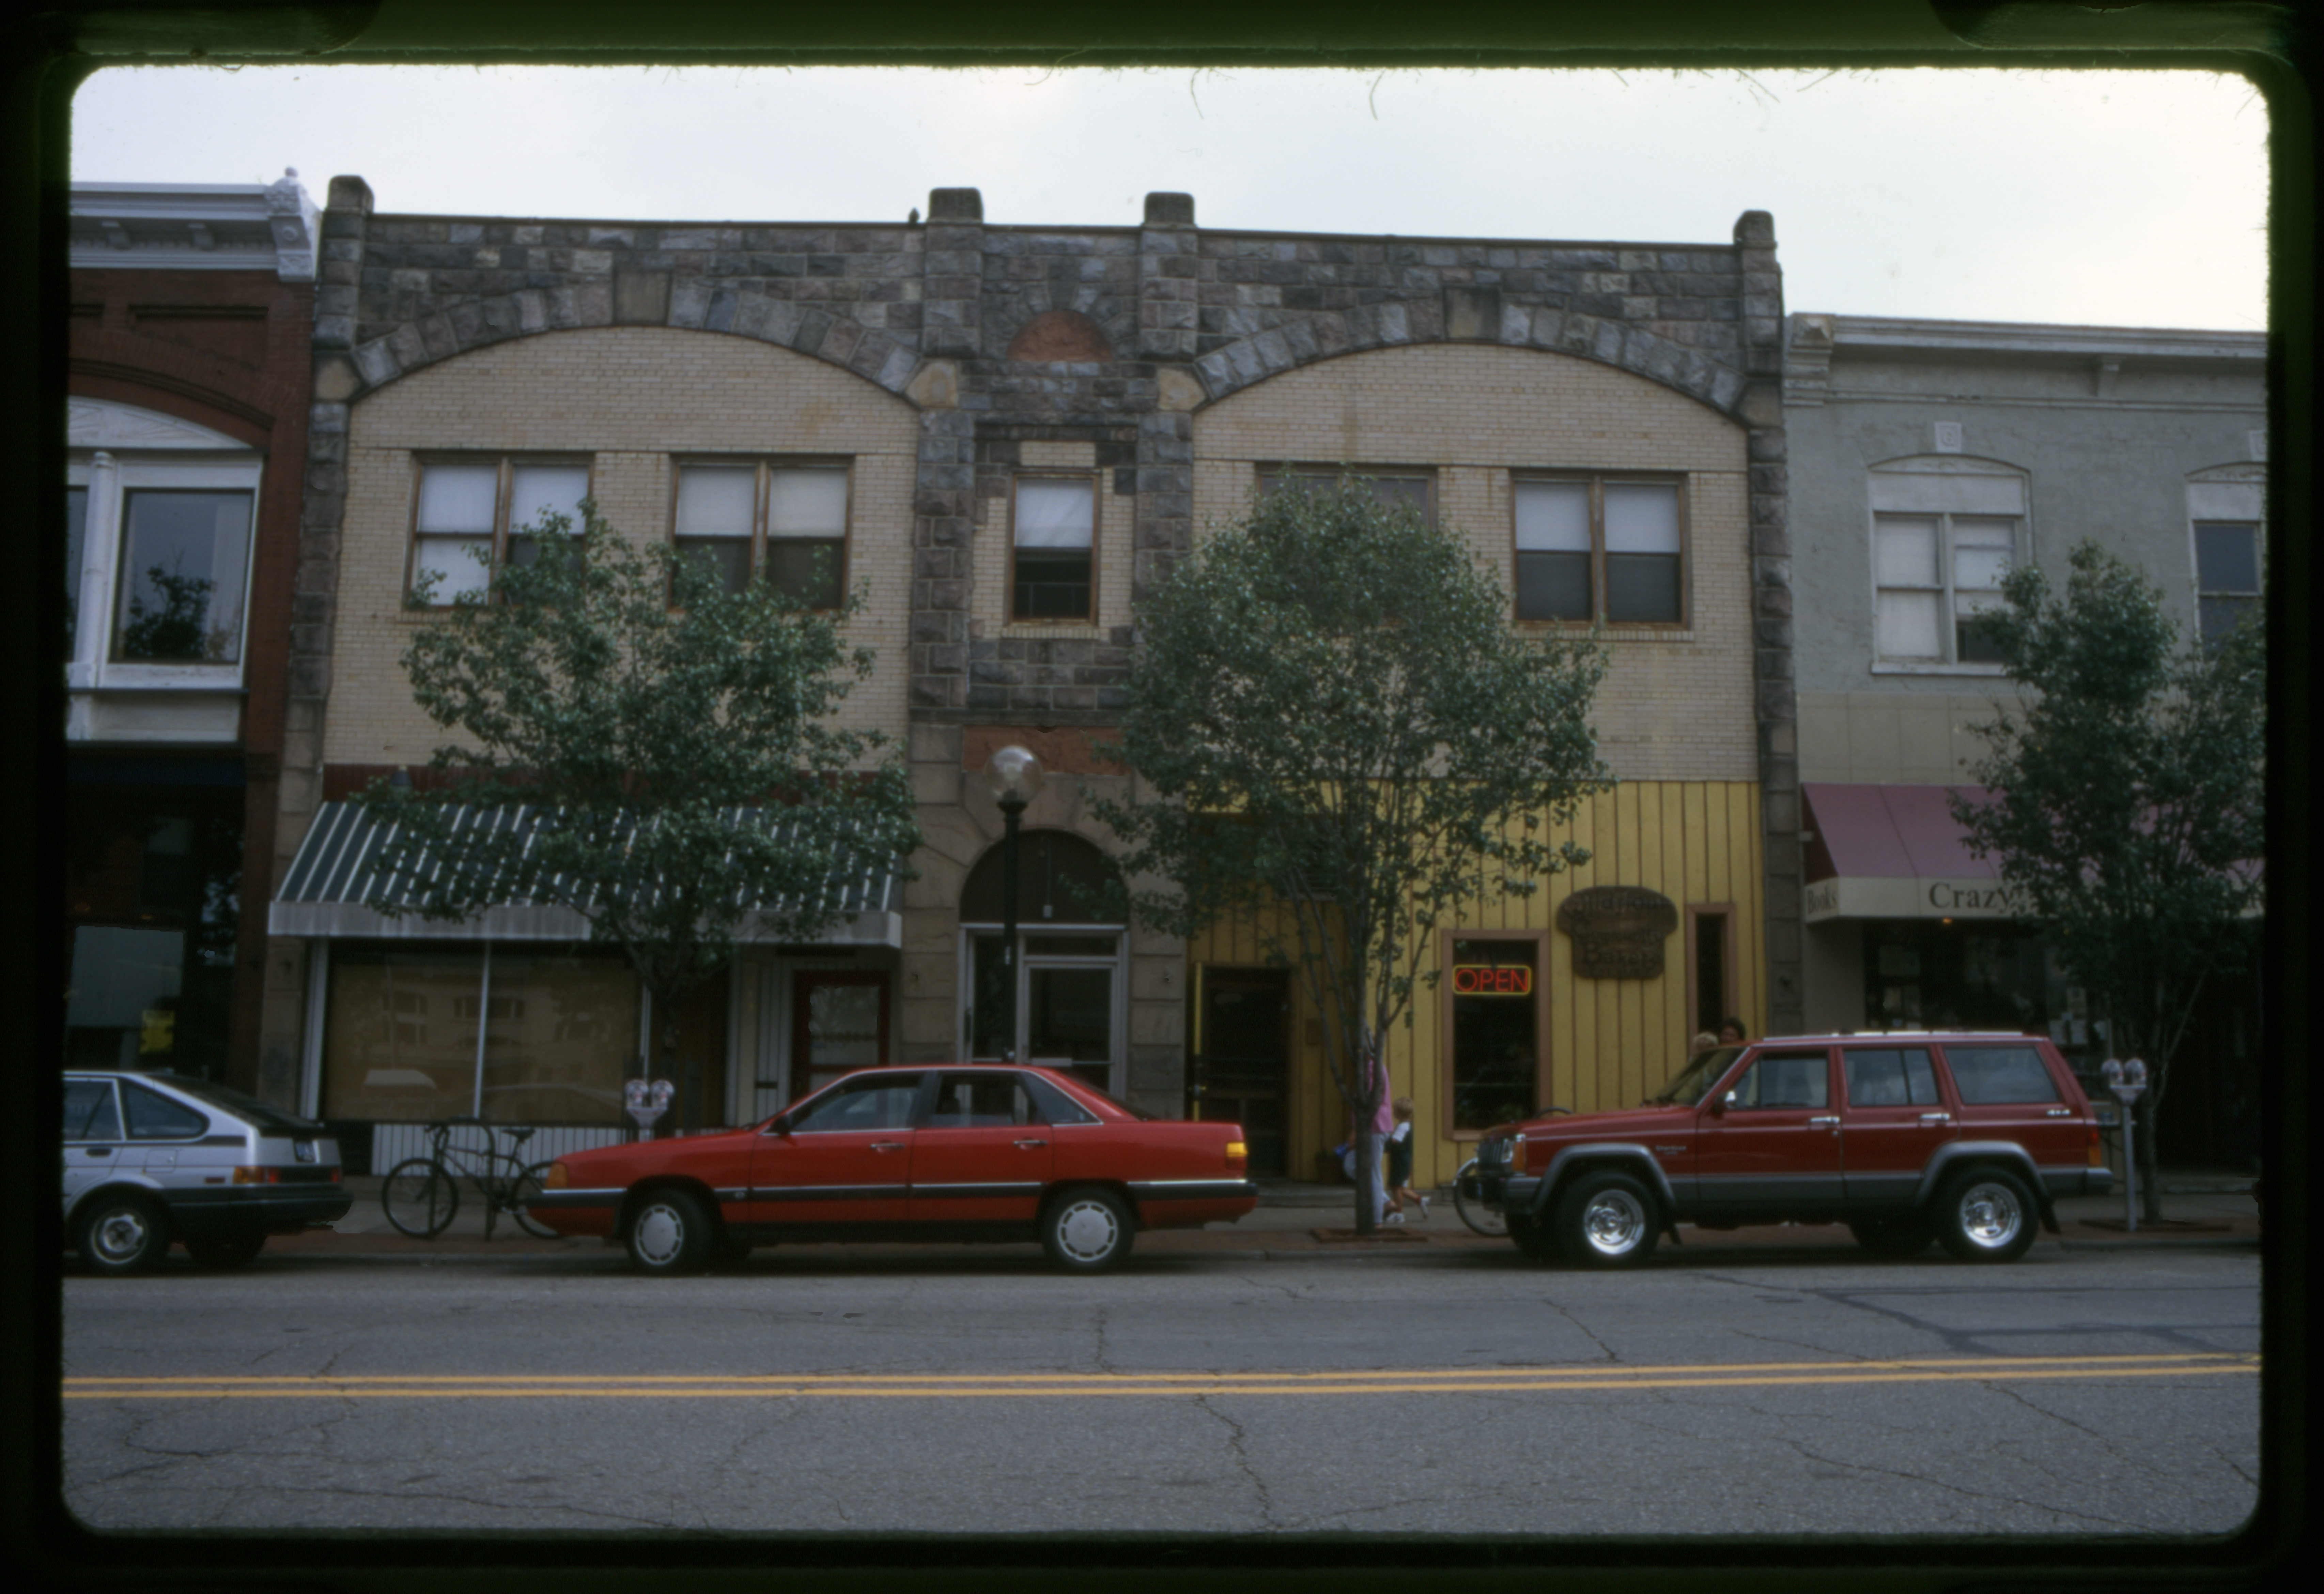 212-208 N Fourth Ave, 1996 image